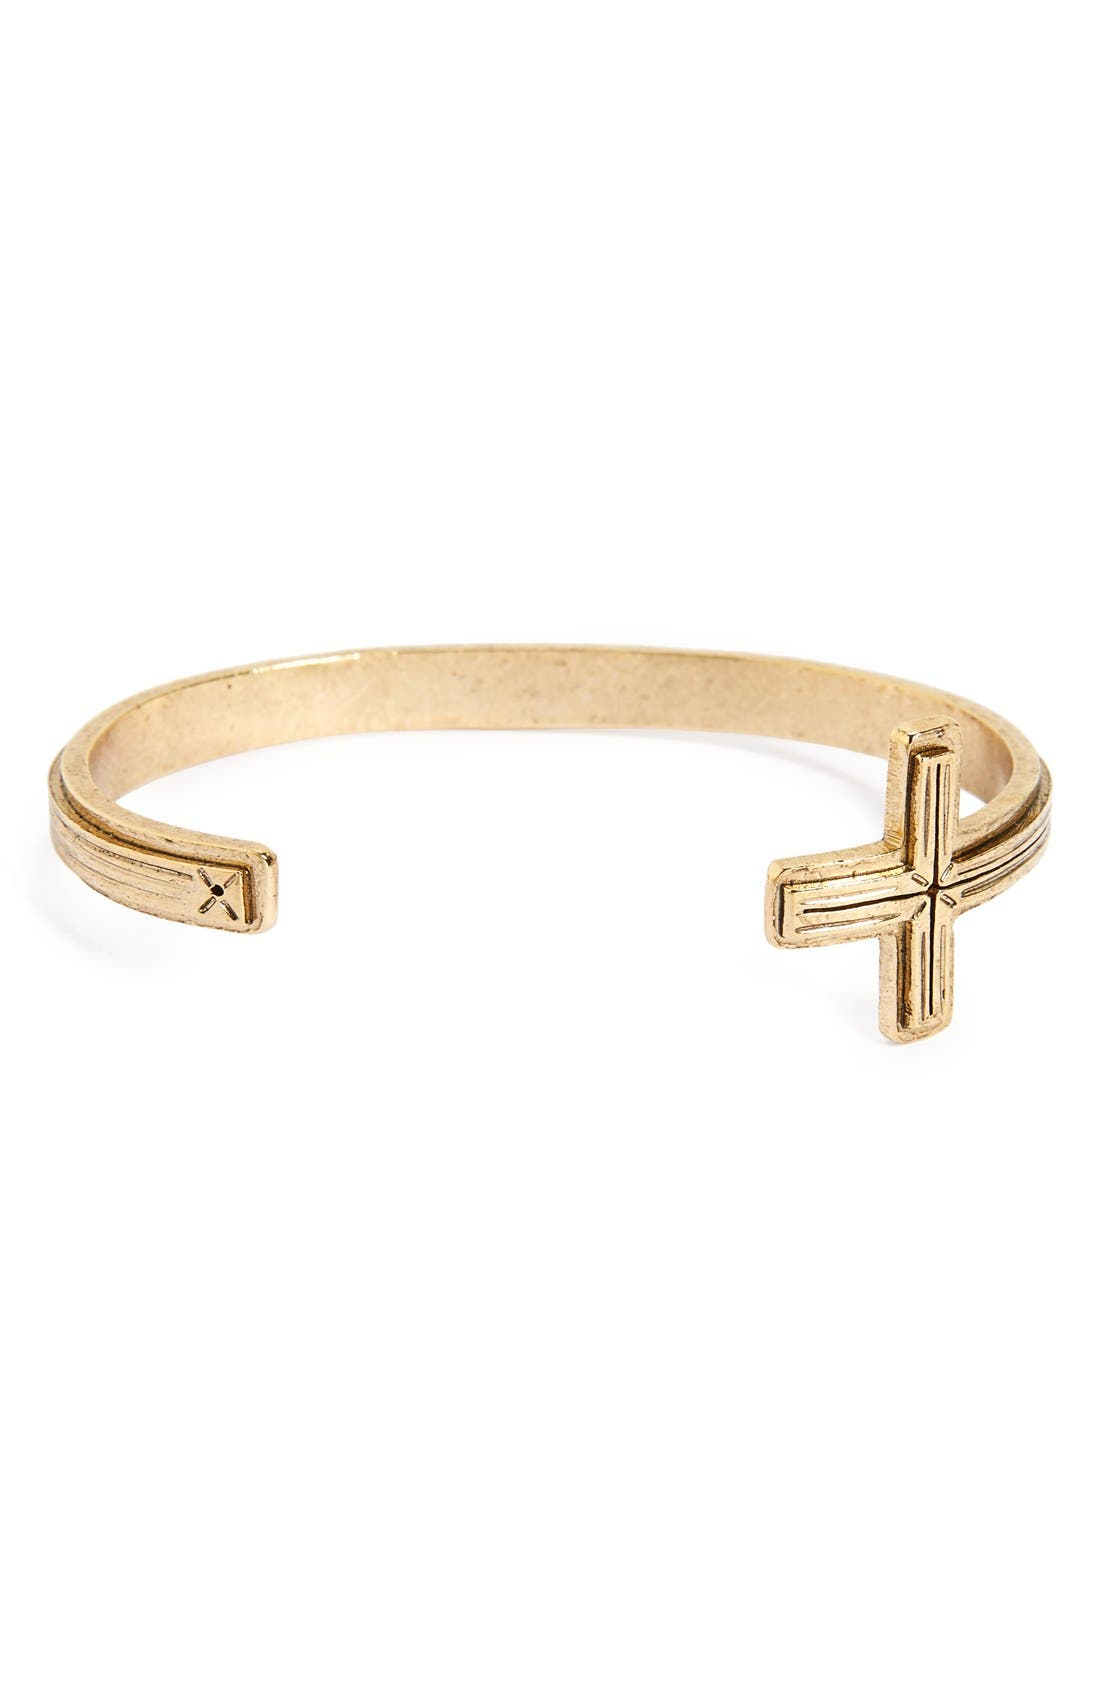 Virgins Saints & Angels Santissimo Open Cross Cuff Bracelet